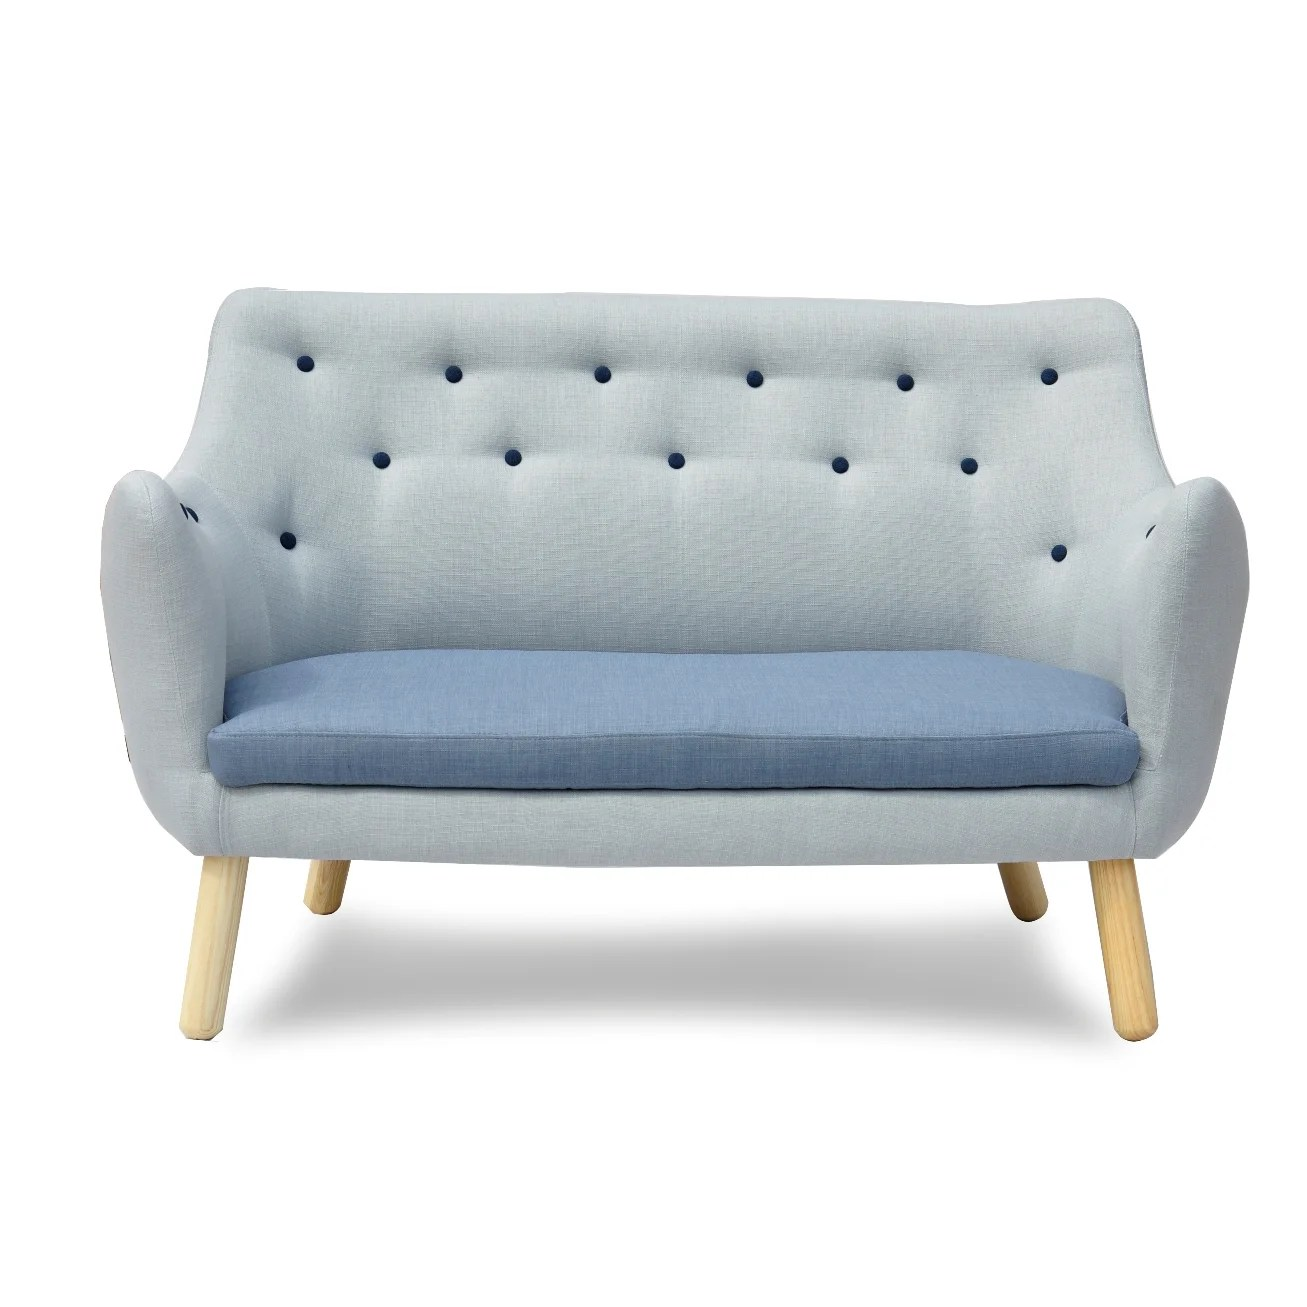 Poet Sofa Ceets Poet Loveseat And Reviews Wayfair